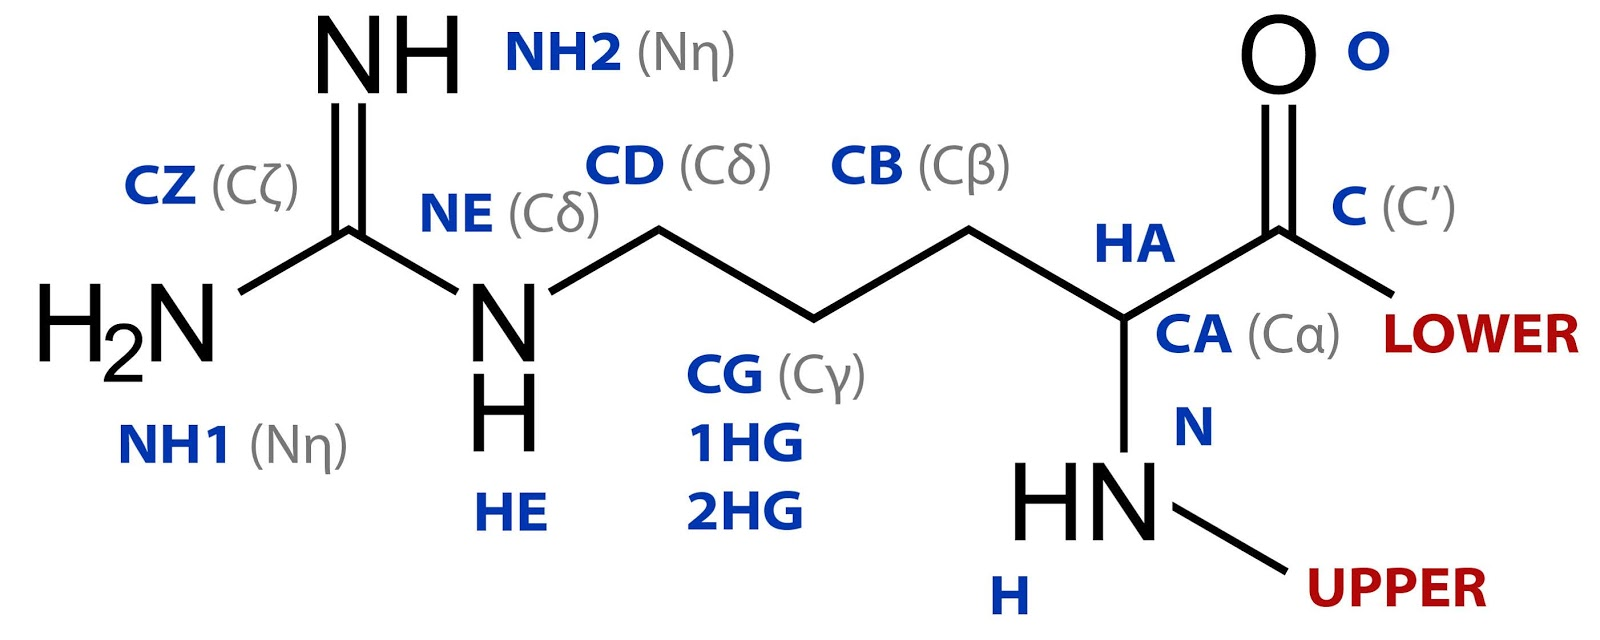 Everything you wanted to know about isopeptide bonds in